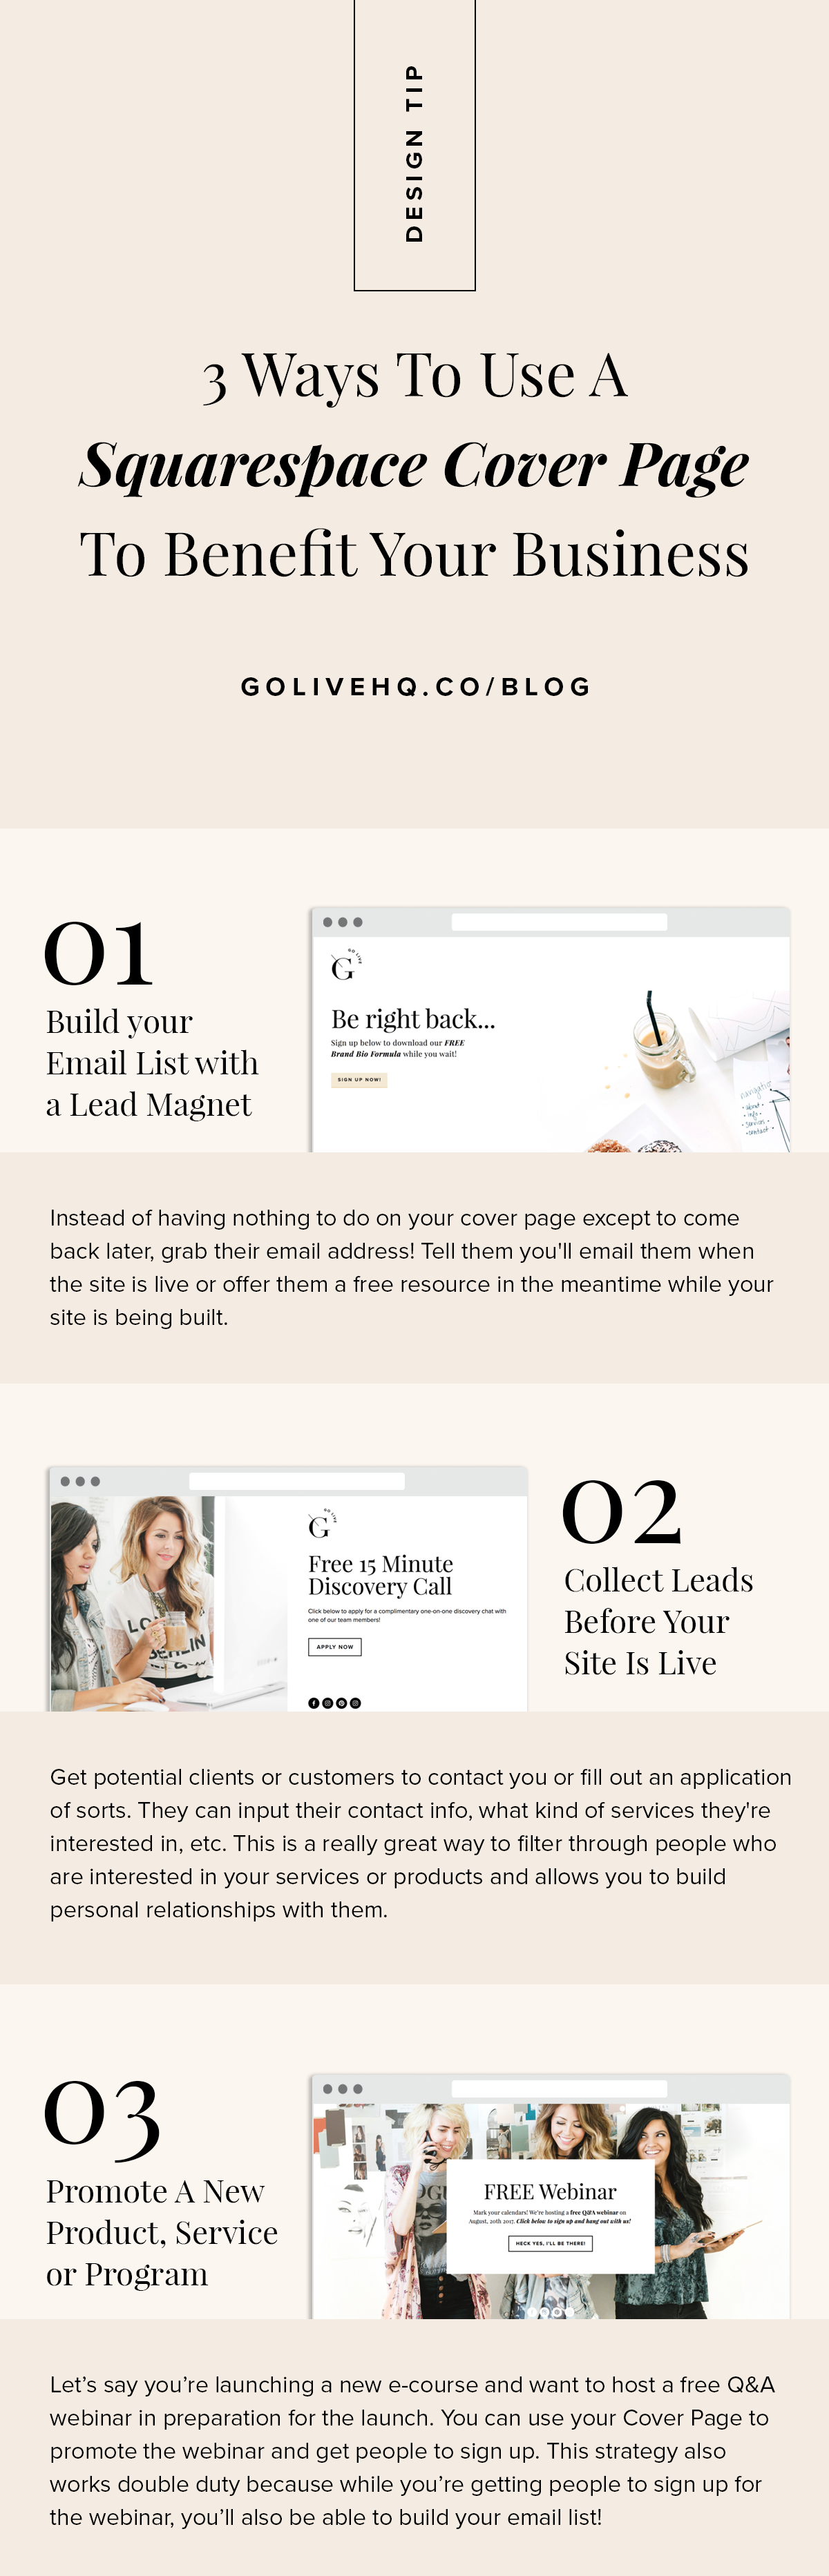 3 Ways To Use A Squarespace Cover Page To Benefit Your Business   By Go Live HQ